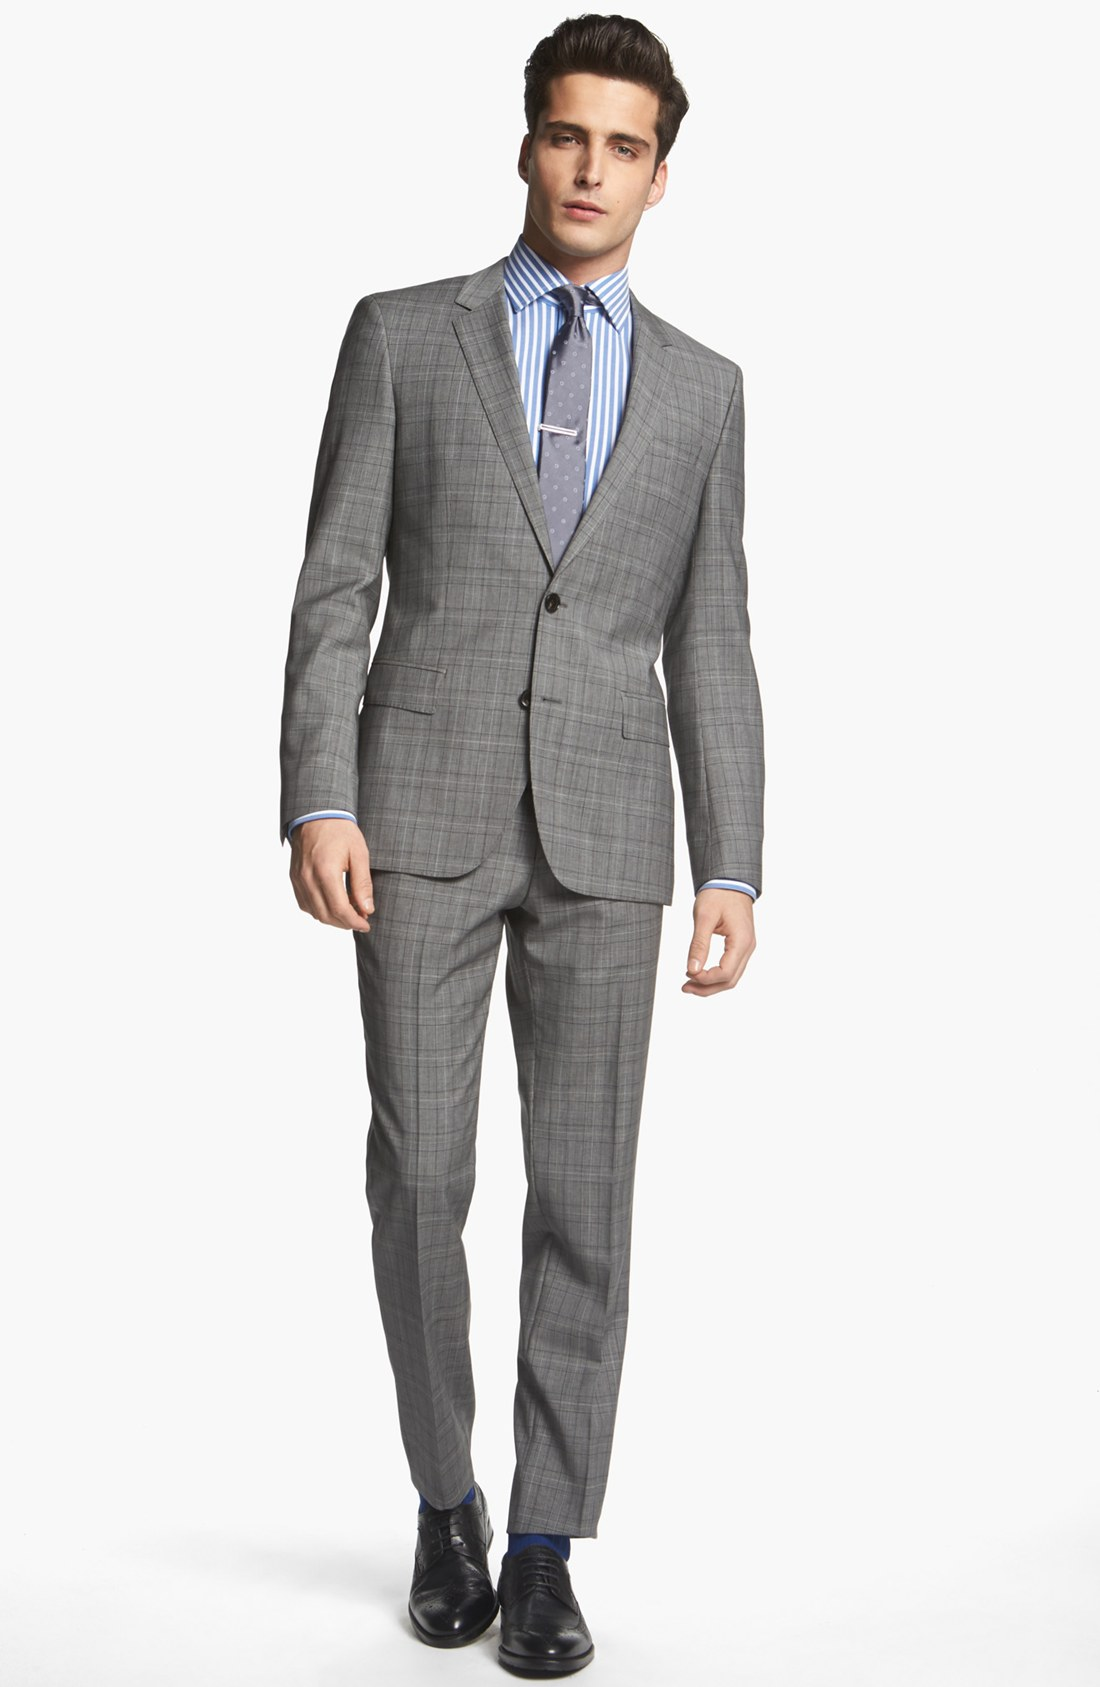 Boss by hugo boss hugegenius extra trim fit plaid suit in for Nordstrom men s dress shirt fit guide